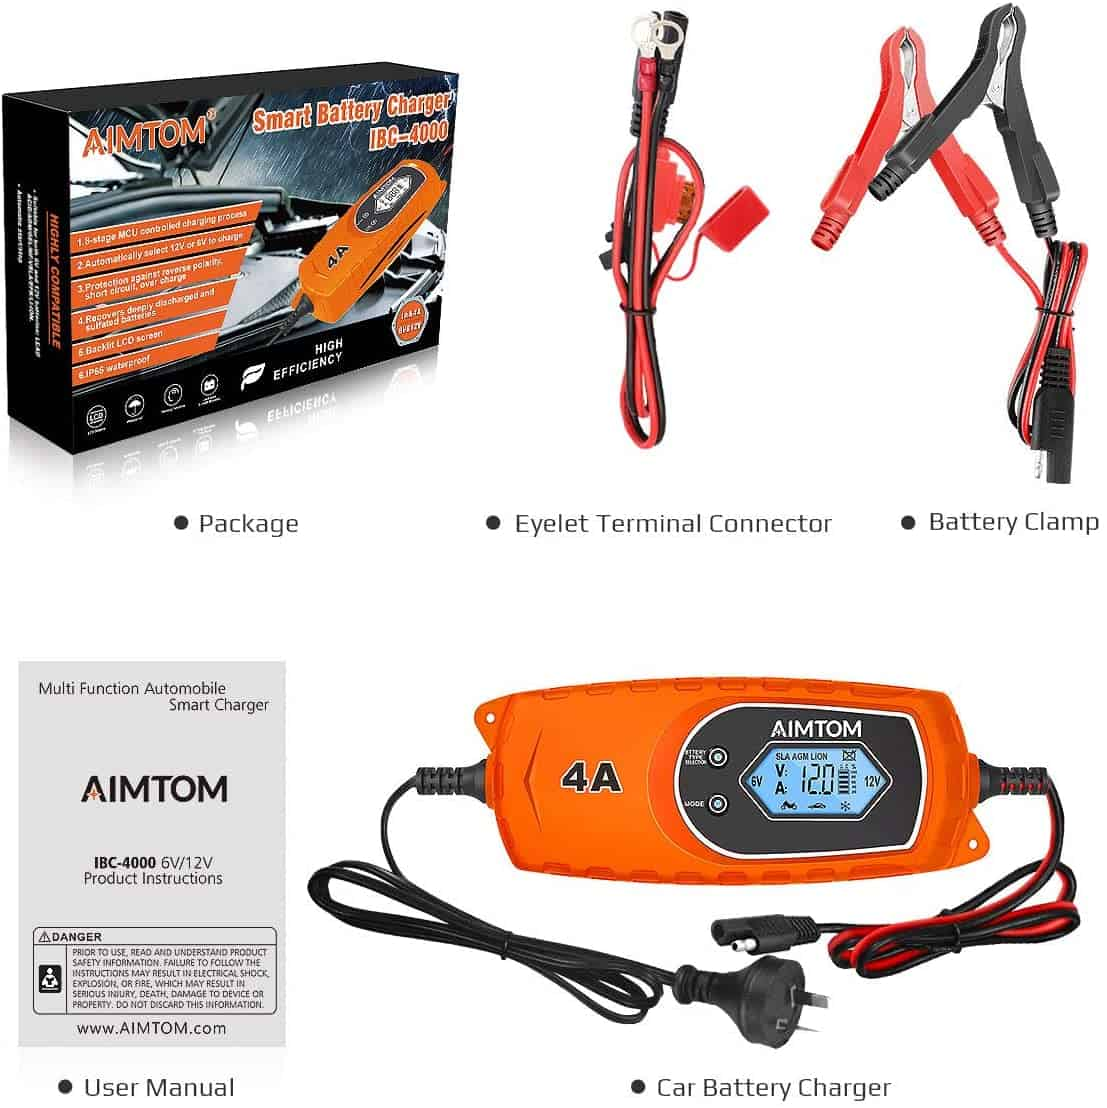 aimtom smart battery charger review australia